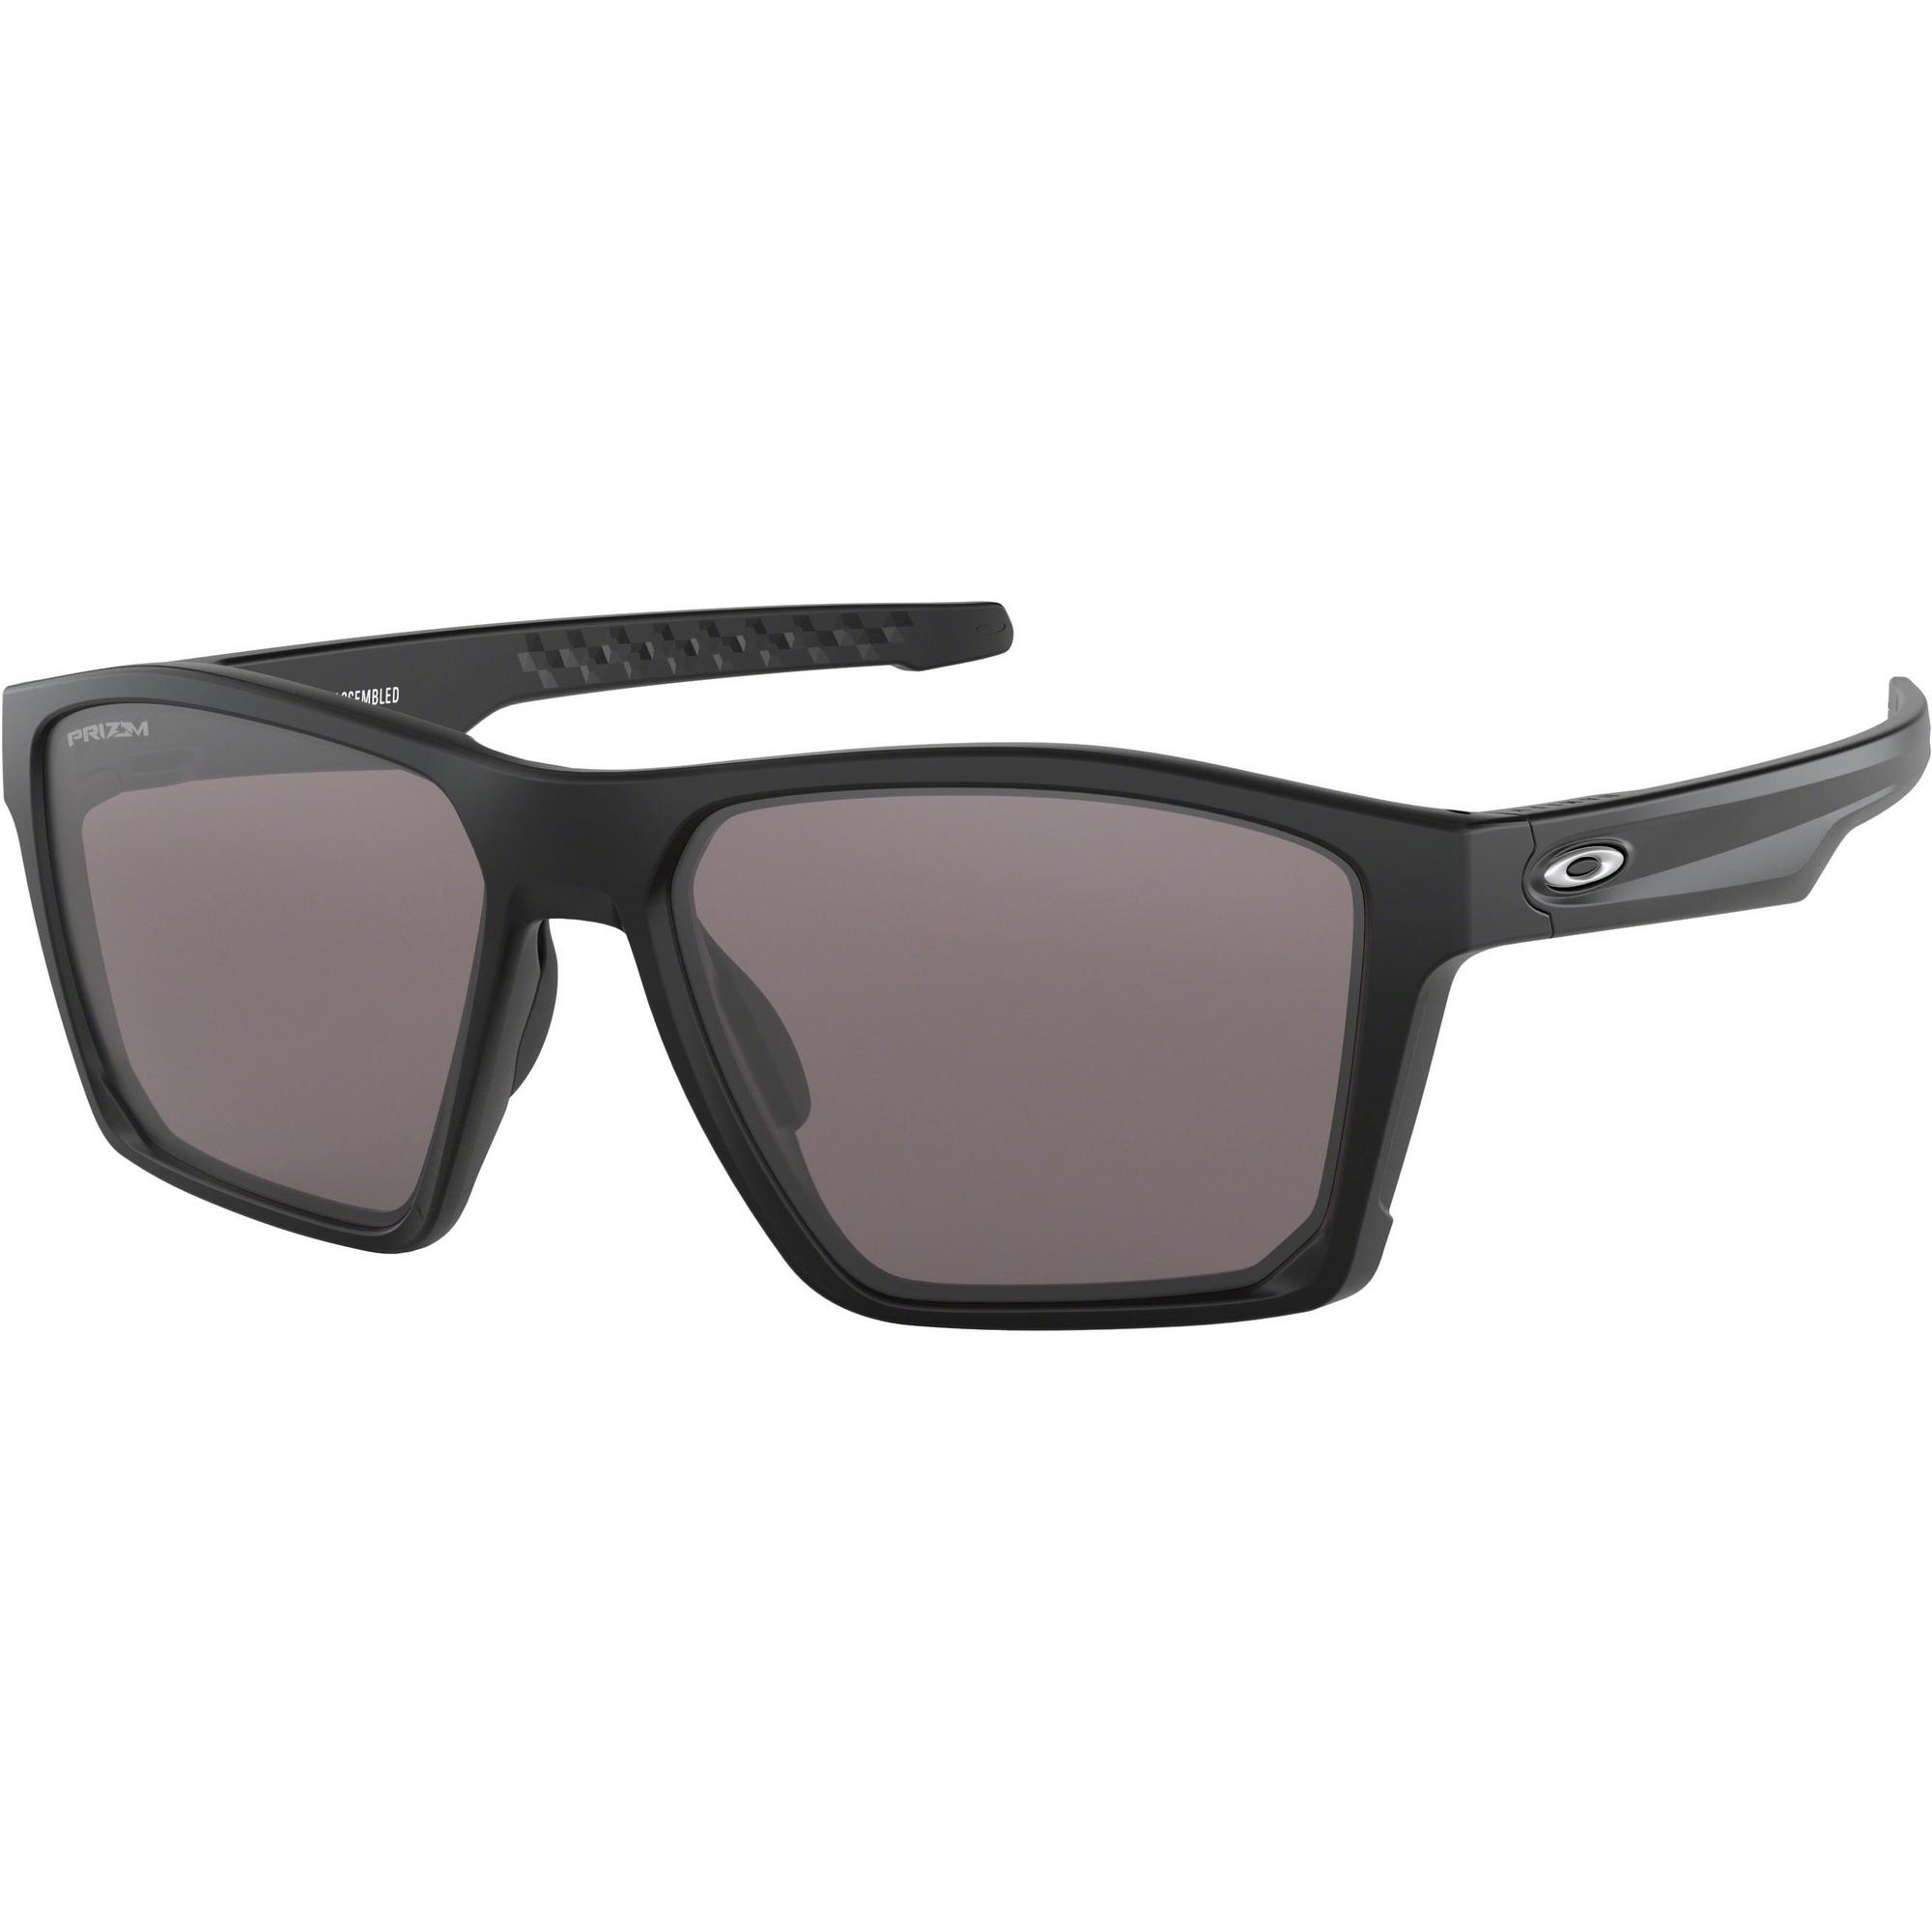 Men's Targetline Prizm Black Sunglasses